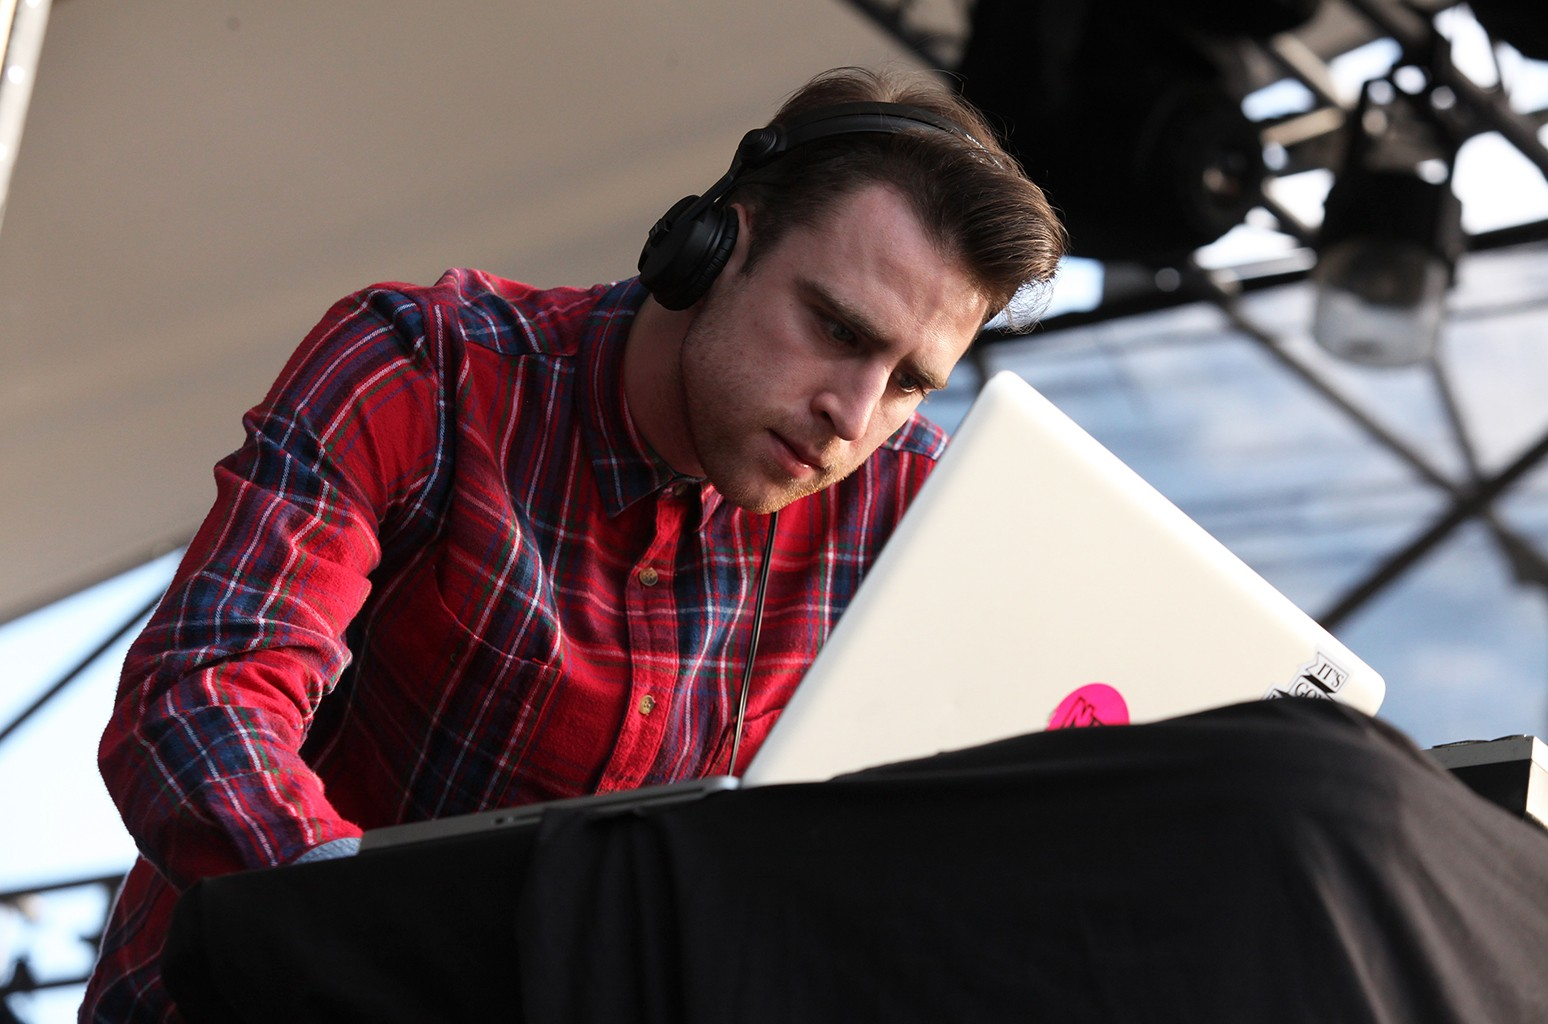 Jackmaster performs during the Voodoo Experience at City Park on Oct. 30, 2011 in New Orleans.